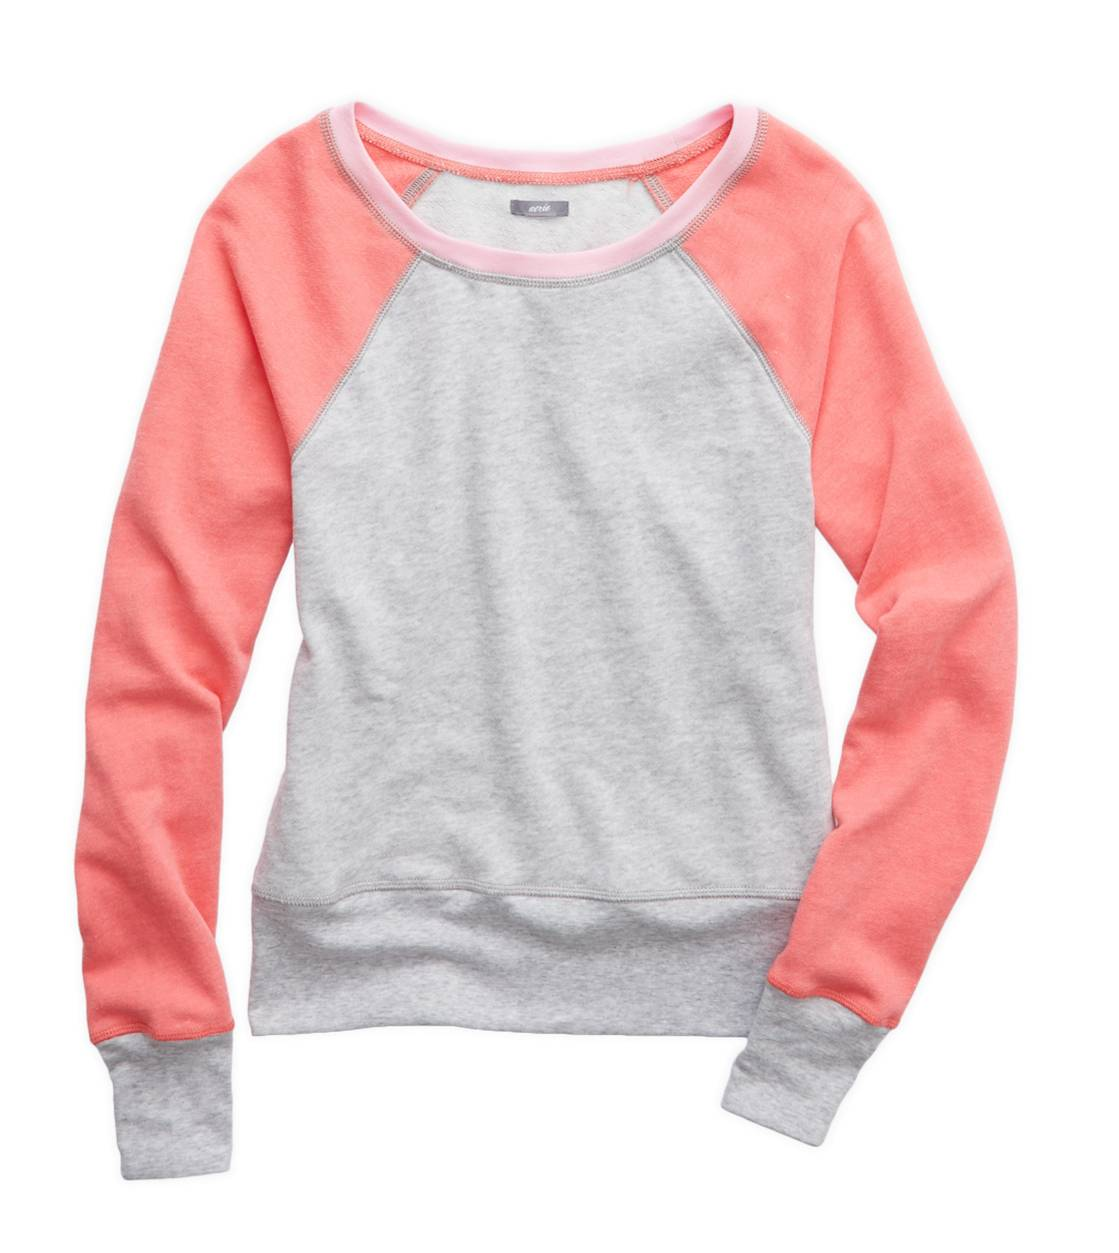 Medium Heather Grey Aerie Raglan Crewneck Sweatshirt